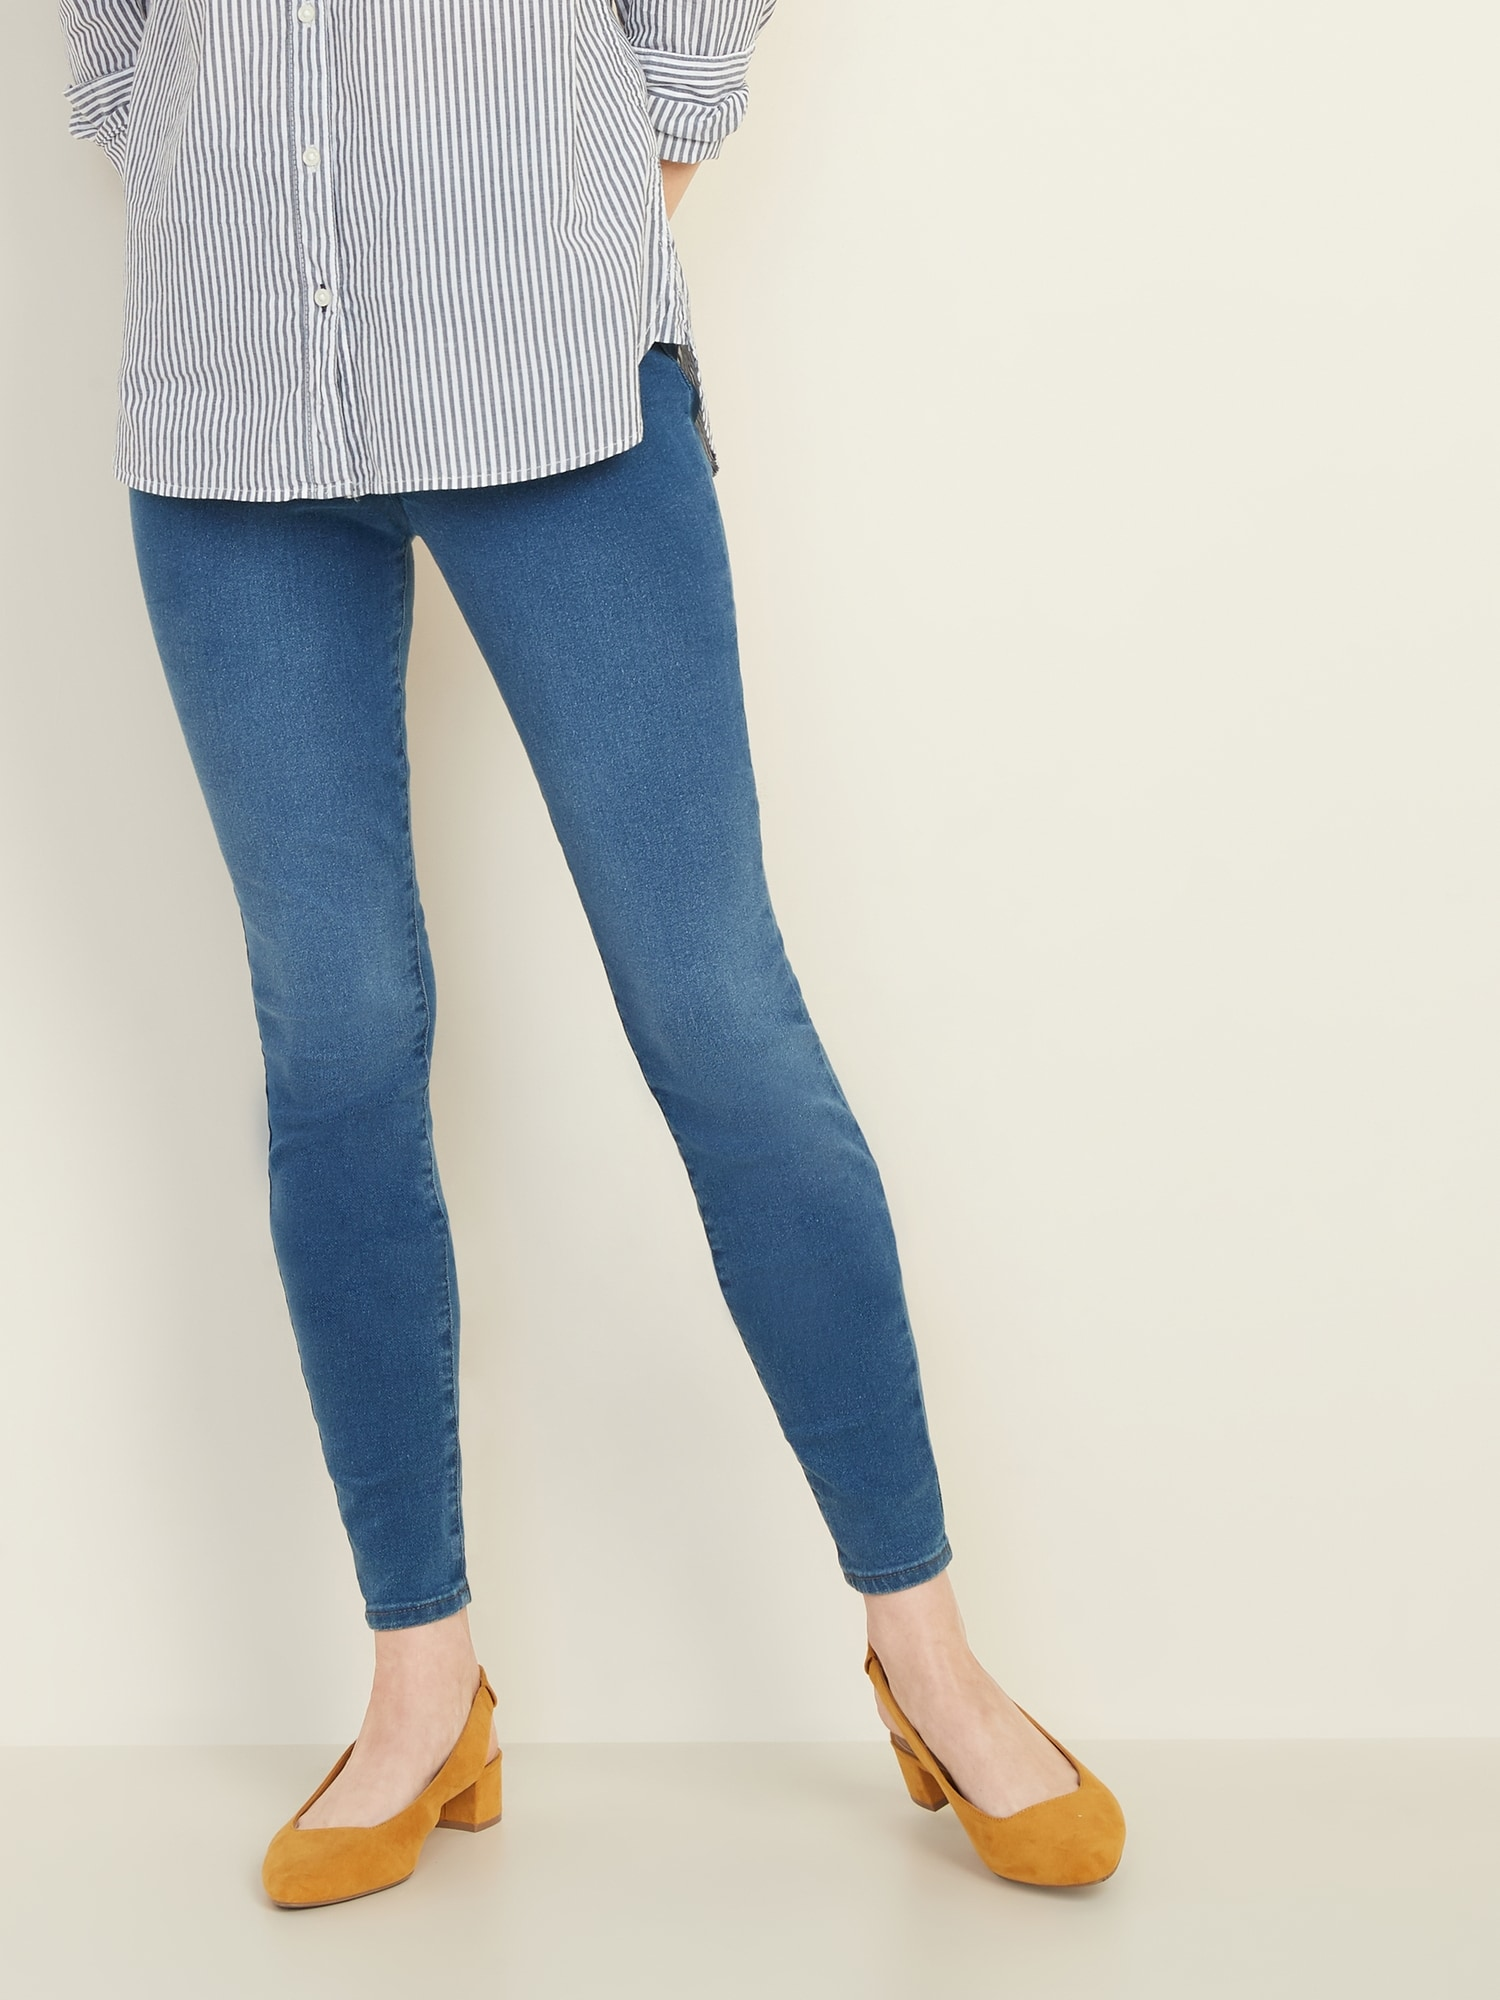 a7abb92c6cc69 Super Skinny Pull-On Jeggings for Women | Old Navy